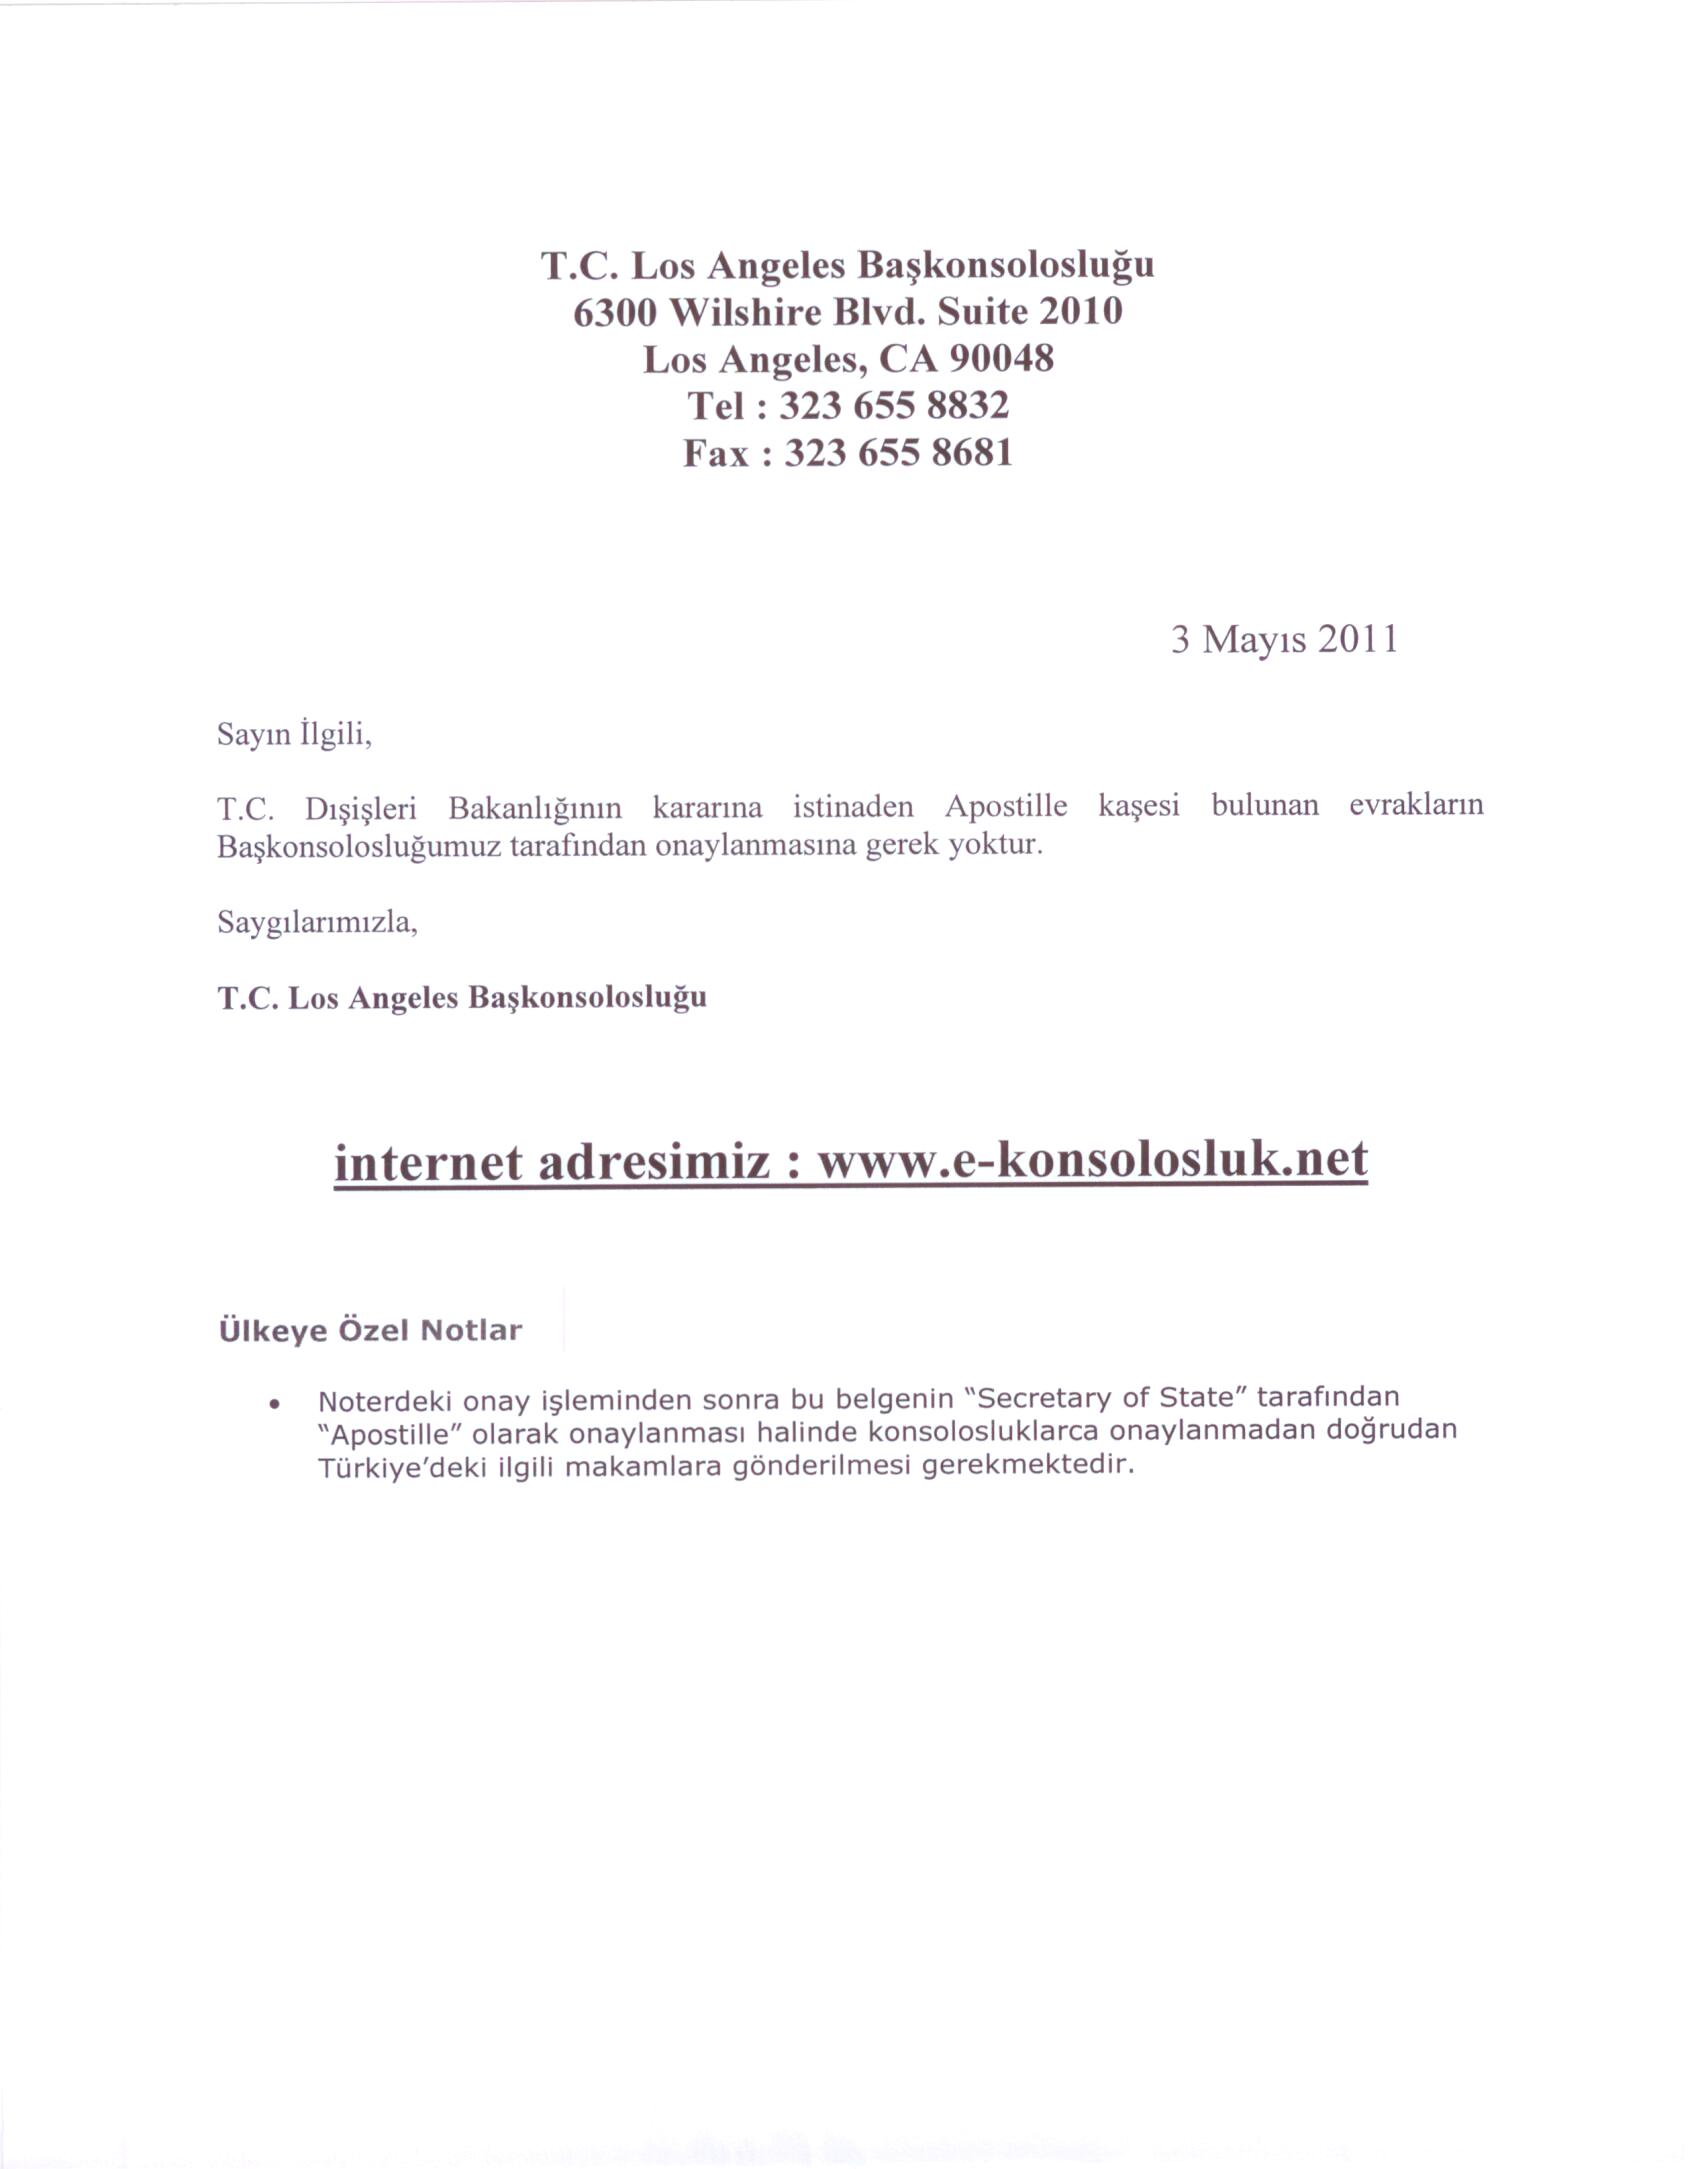 Document legalization translation at secretary of state andor turkish consulate generals official note about apostille legalization and usa apostille 1betcityfo Image collections